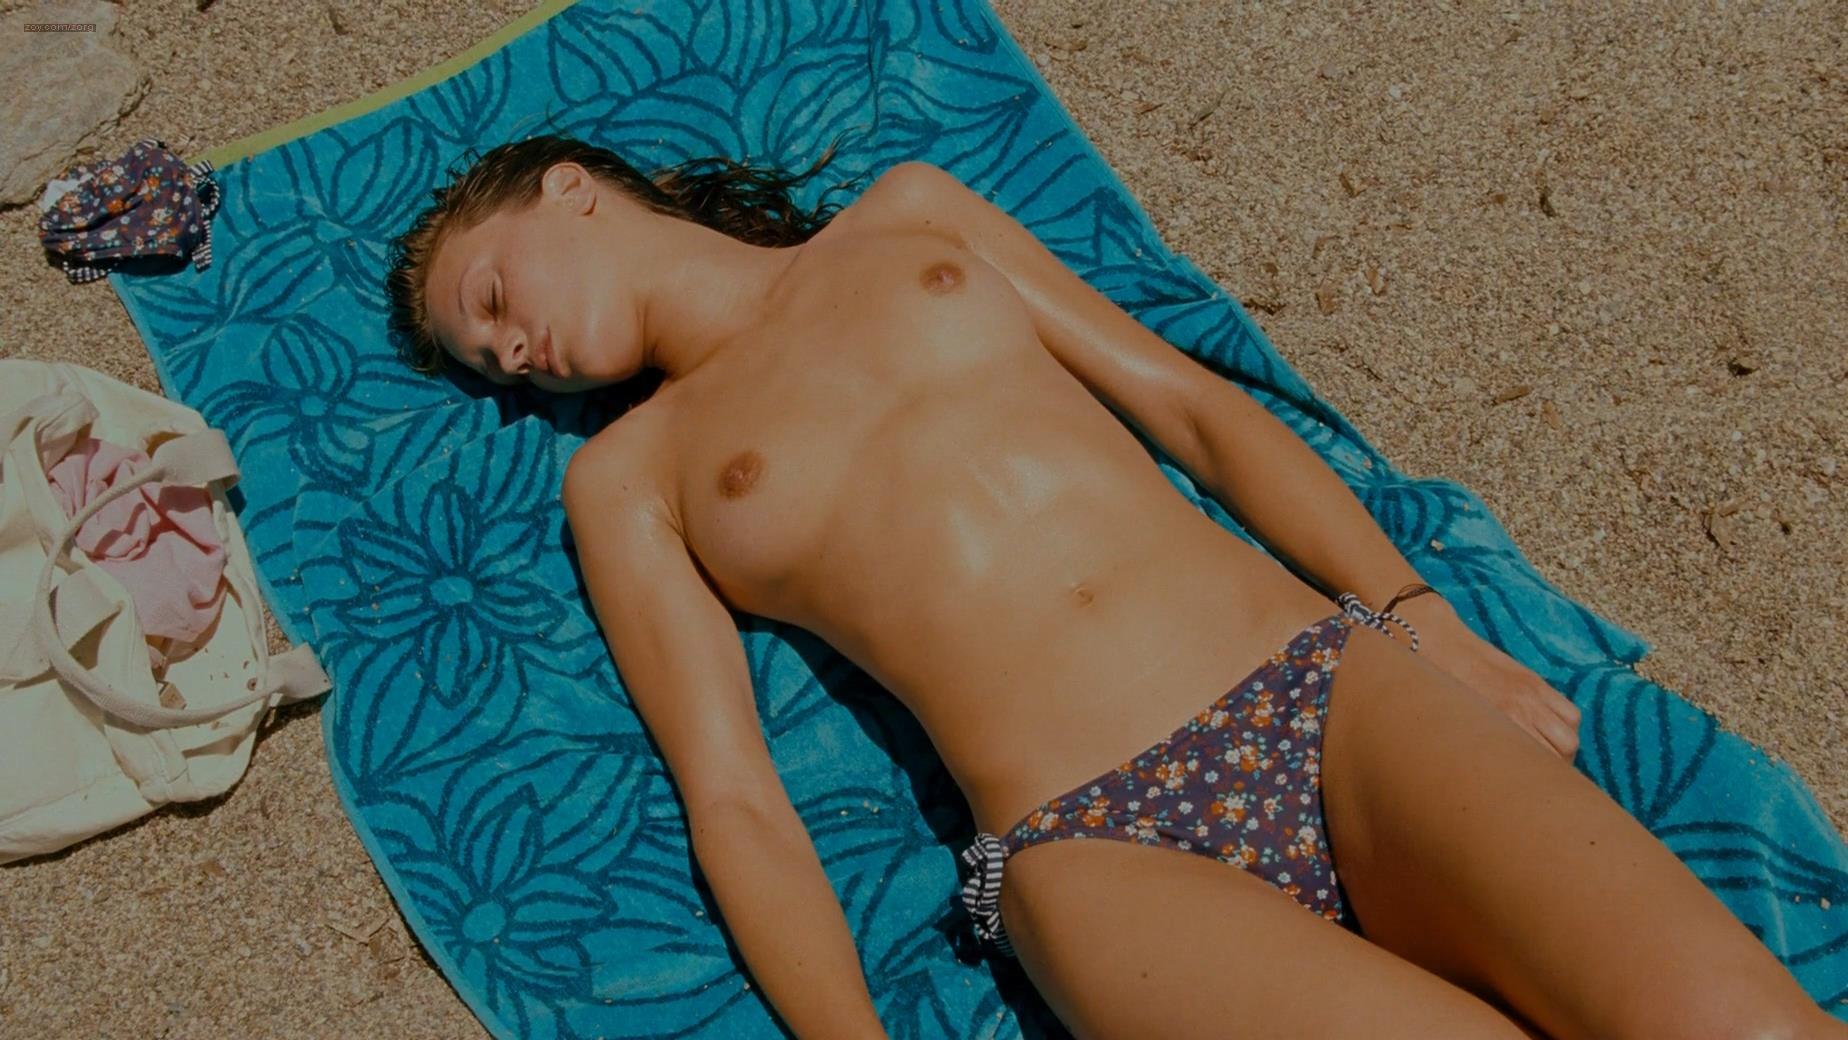 Marine Vacth nude and sex - Jeune & Jolie (2013) hd1080p